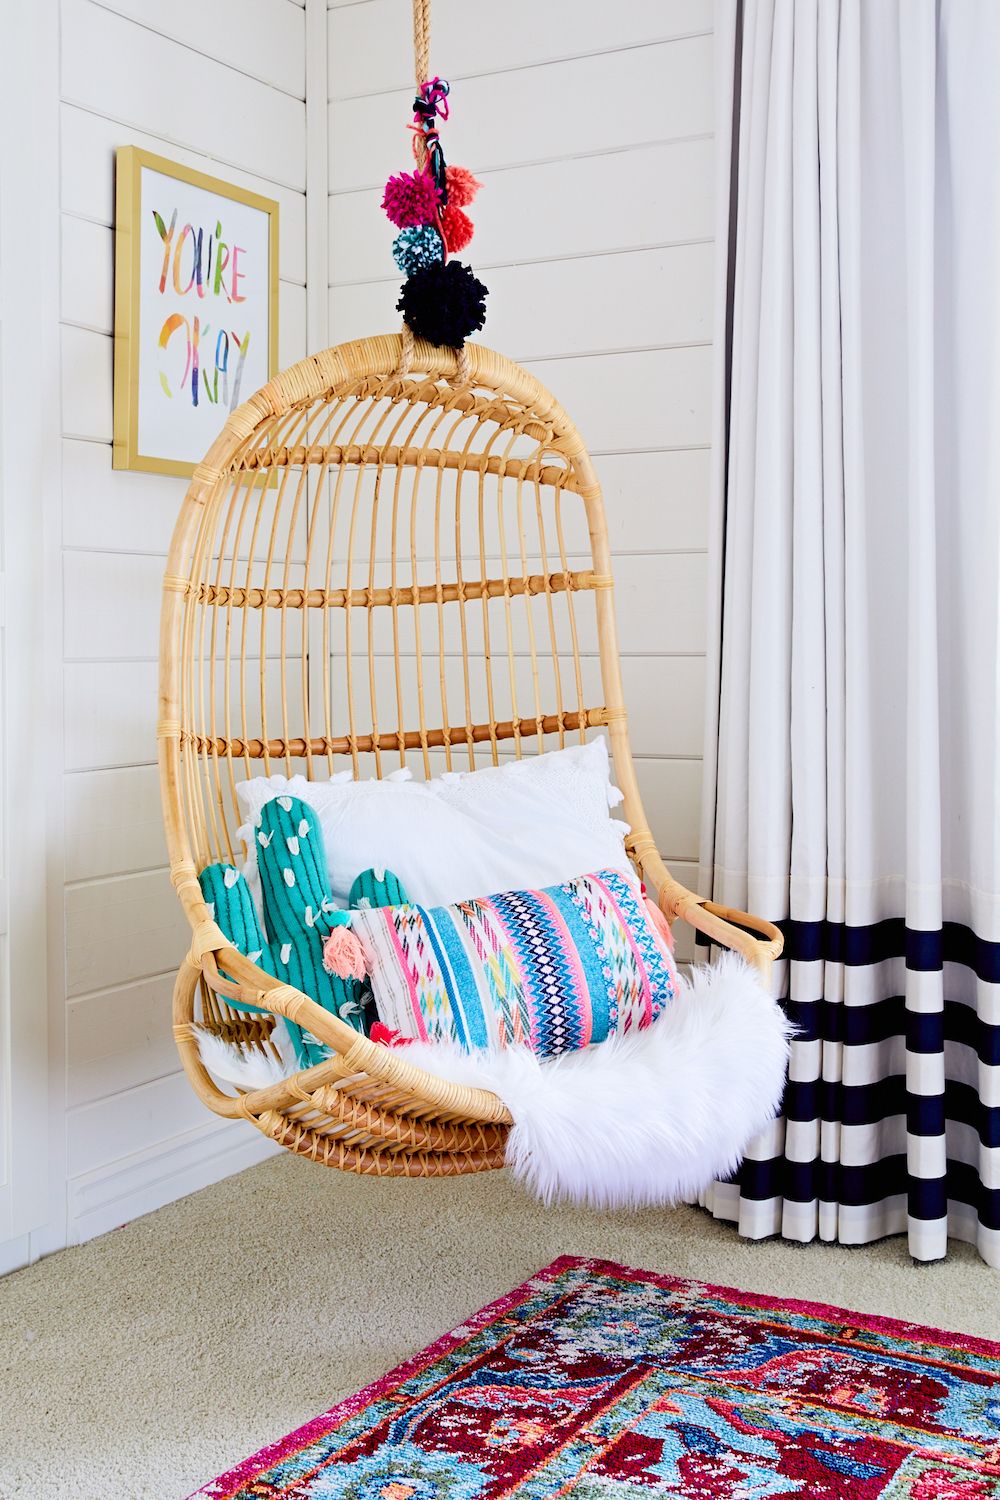 Uncategorized Hanging Chair For Kids Room trendspotting hanging chairs are swinging into kids design boho chic girls room with chair